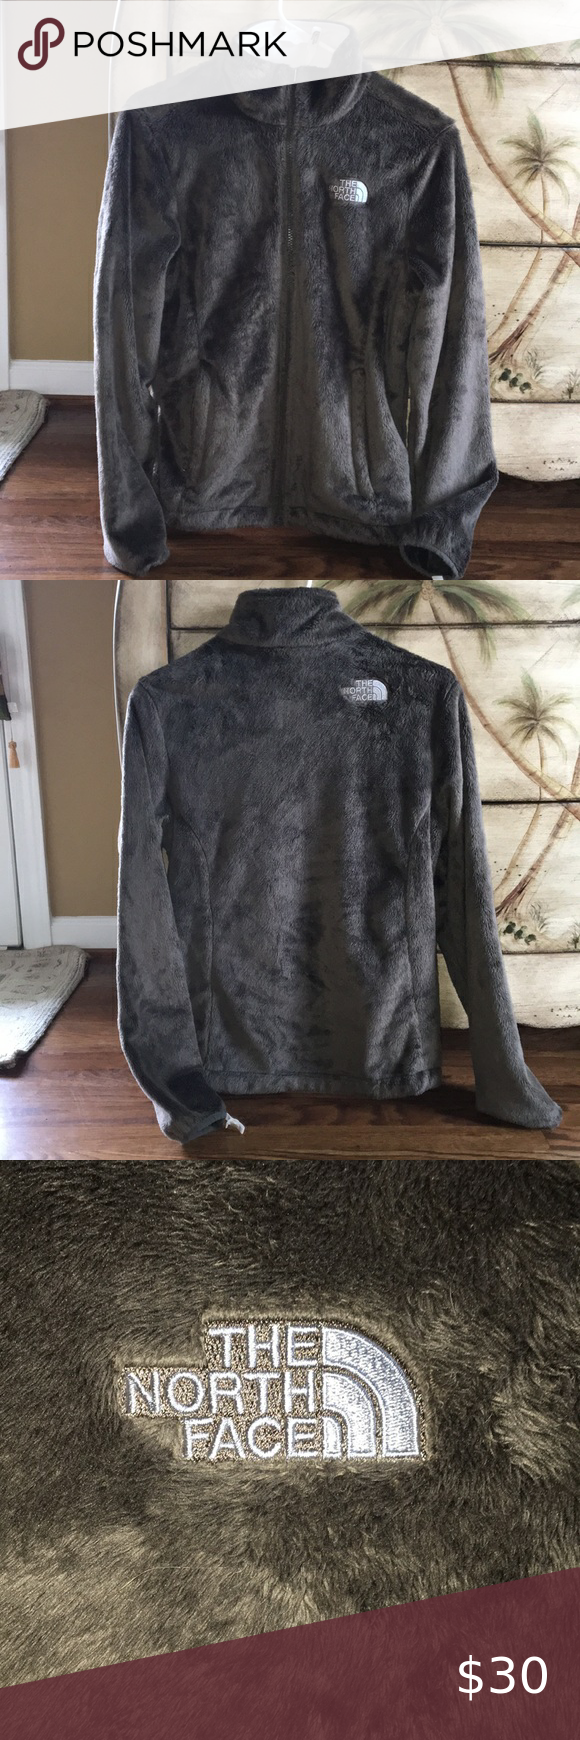 The North Face Jacket Brown Fuzzy Women S Jacket Small The North Face Jackets Coats North Face Jacket Clothes Design Jackets [ 1740 x 580 Pixel ]